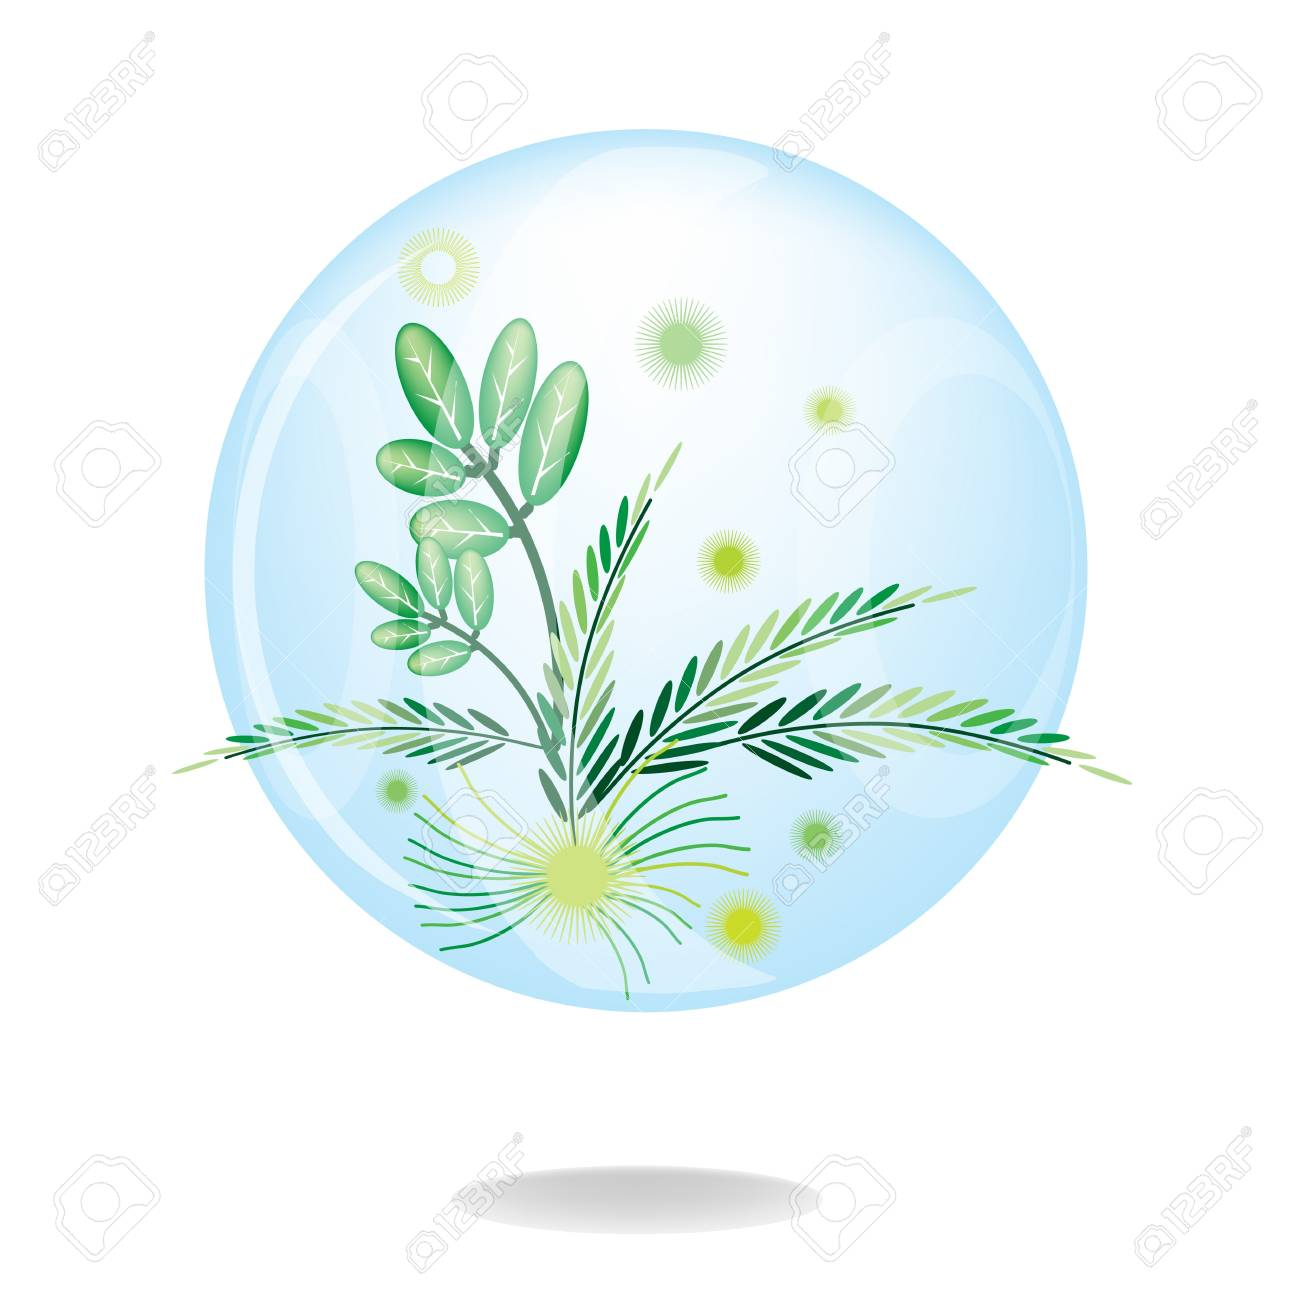 Ecology Concept, An Illustration Collection of Fresh Green Leaf Button for Internet Glowing Eco Green Environmental Conservation Stock Vector - 17669544